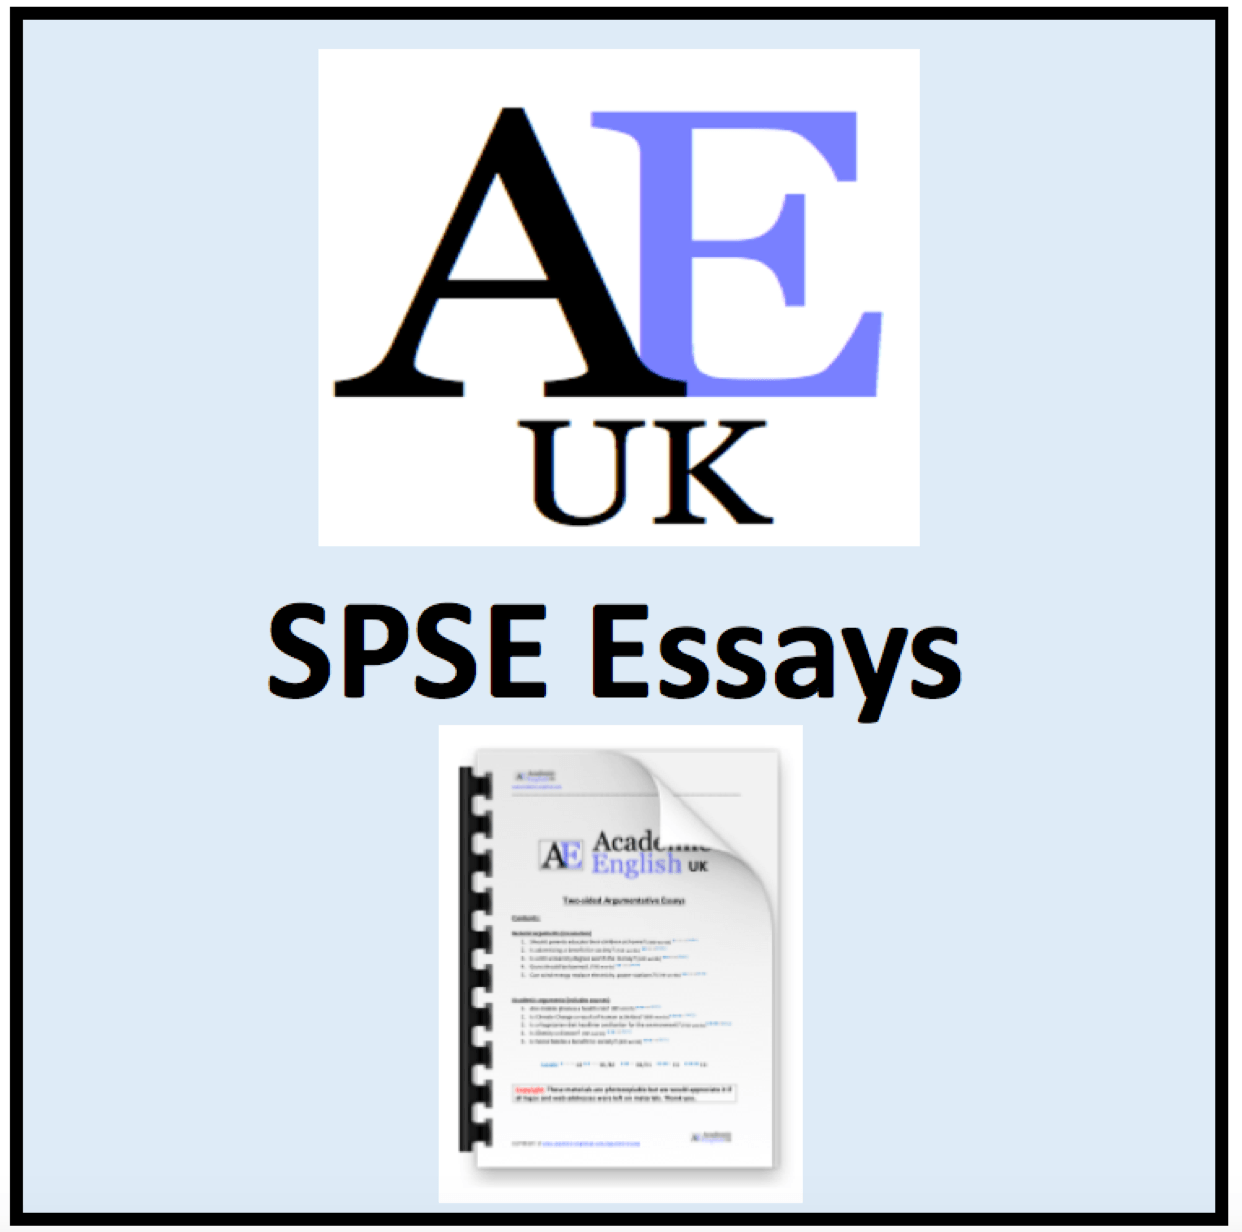 Academic English Situation problem solution evaluation essays